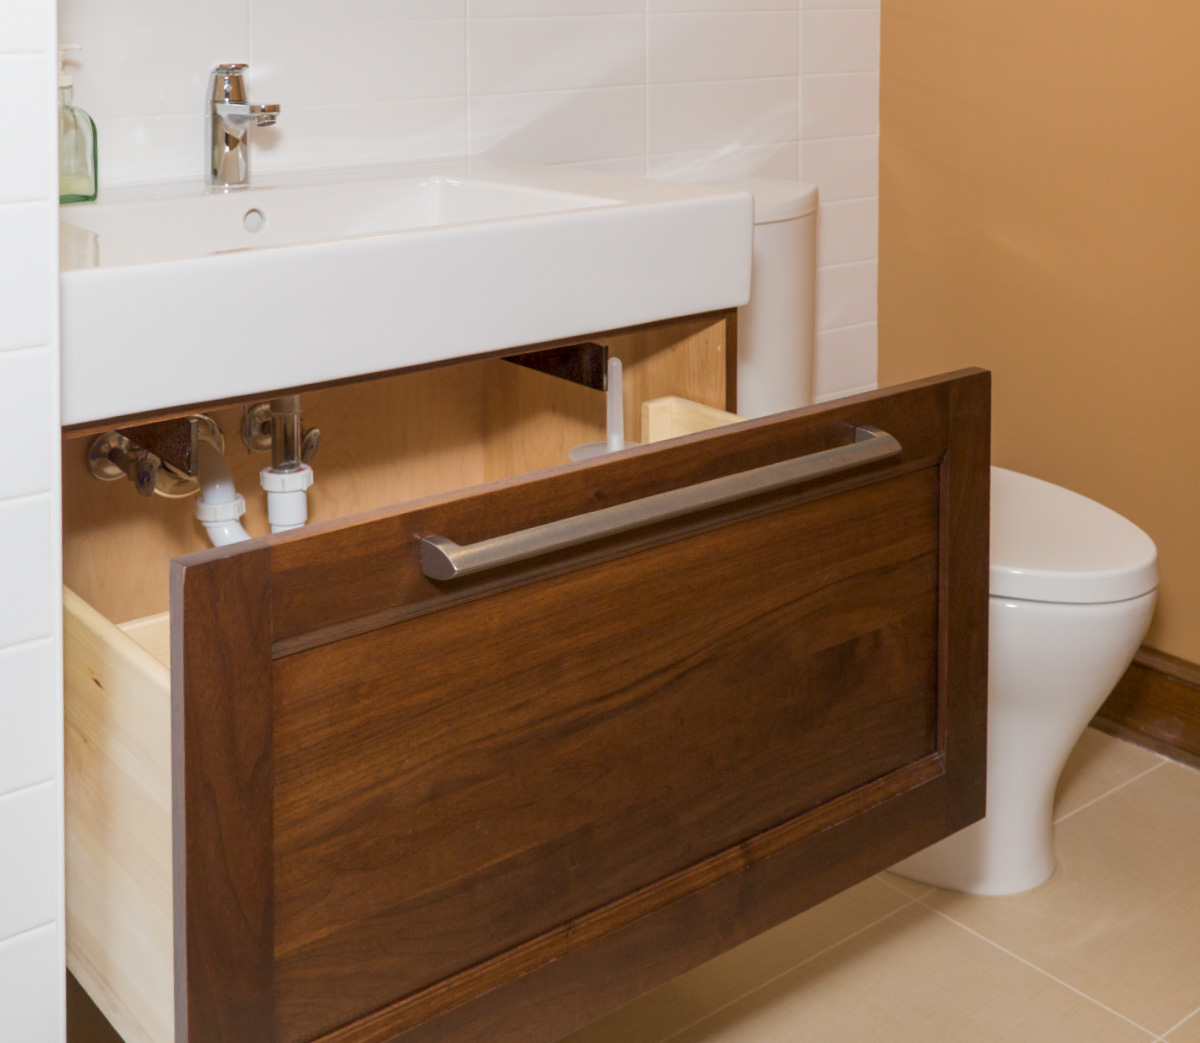 Floating Vanity Mounting Systems in Bathrooms I Federal Brace Federal Brace